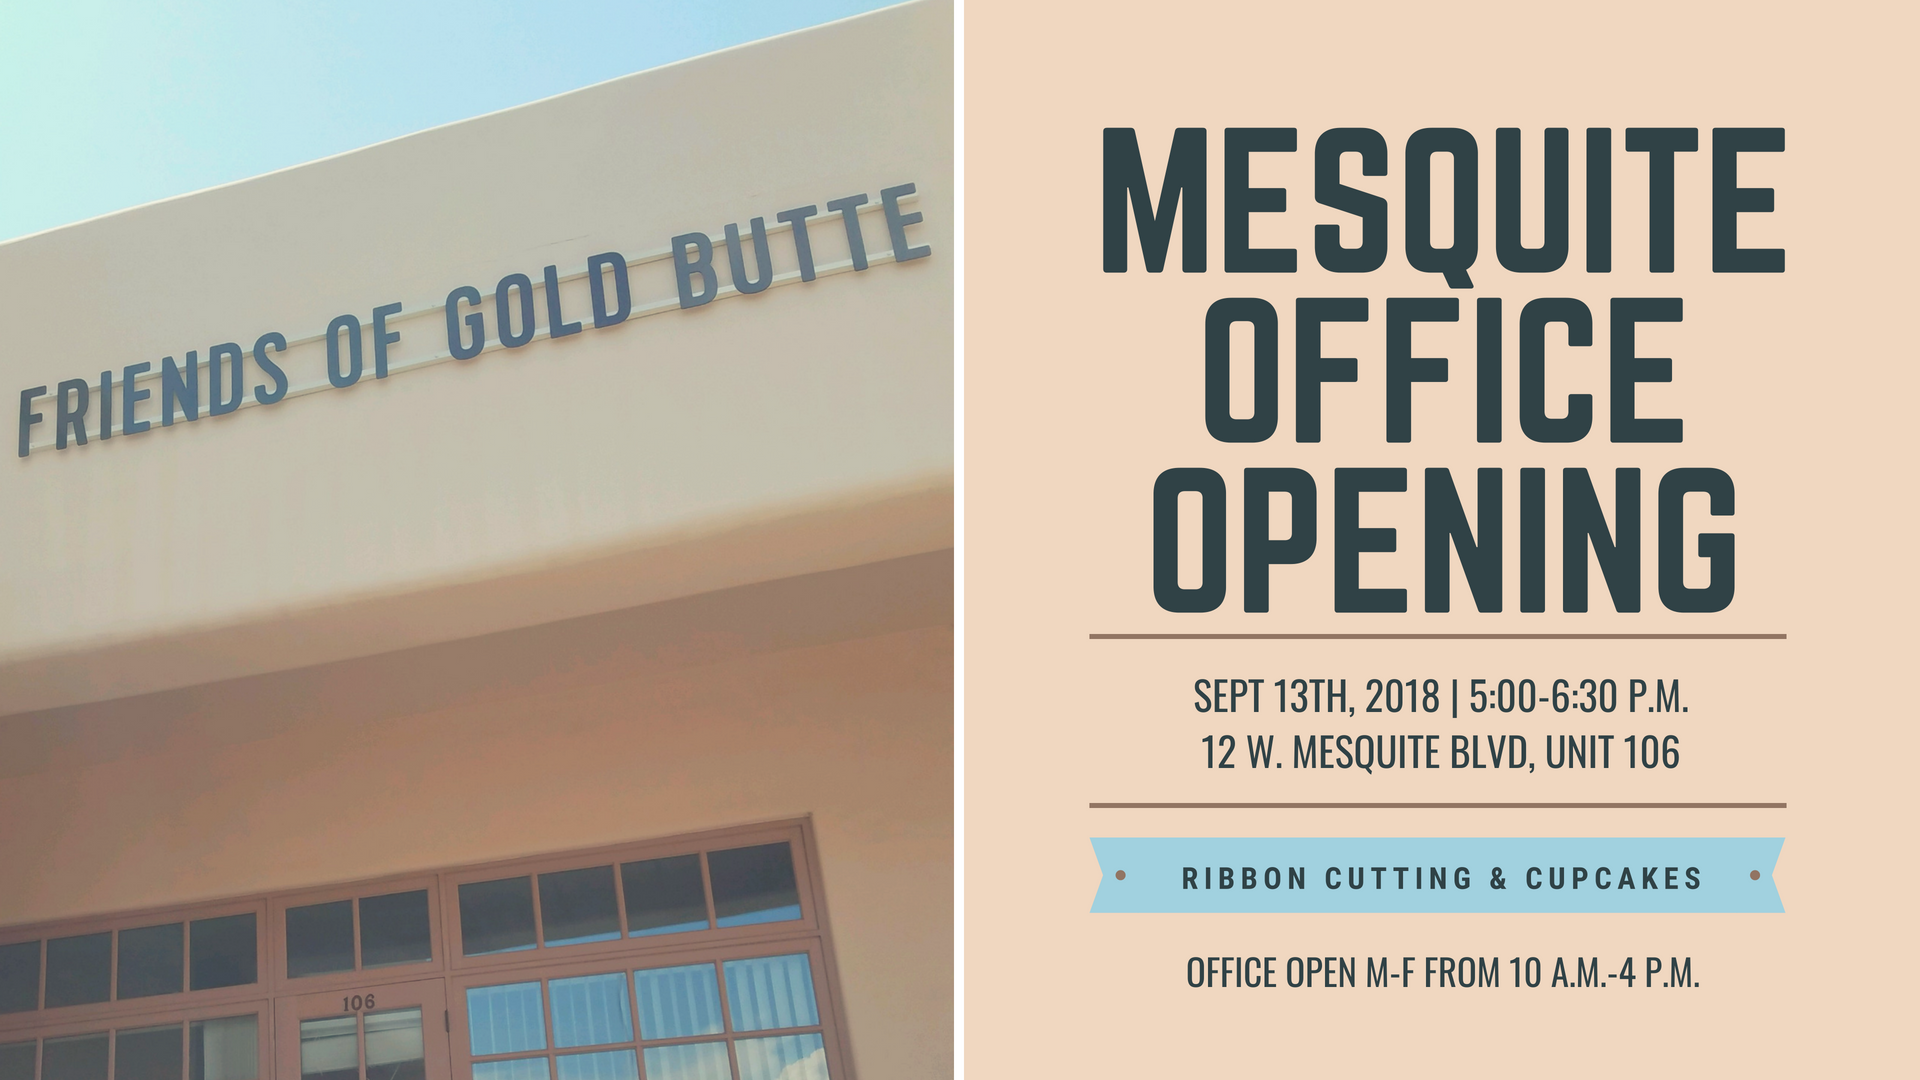 New Office is Opening in Mesquite, NV – Friends of Gold Butte